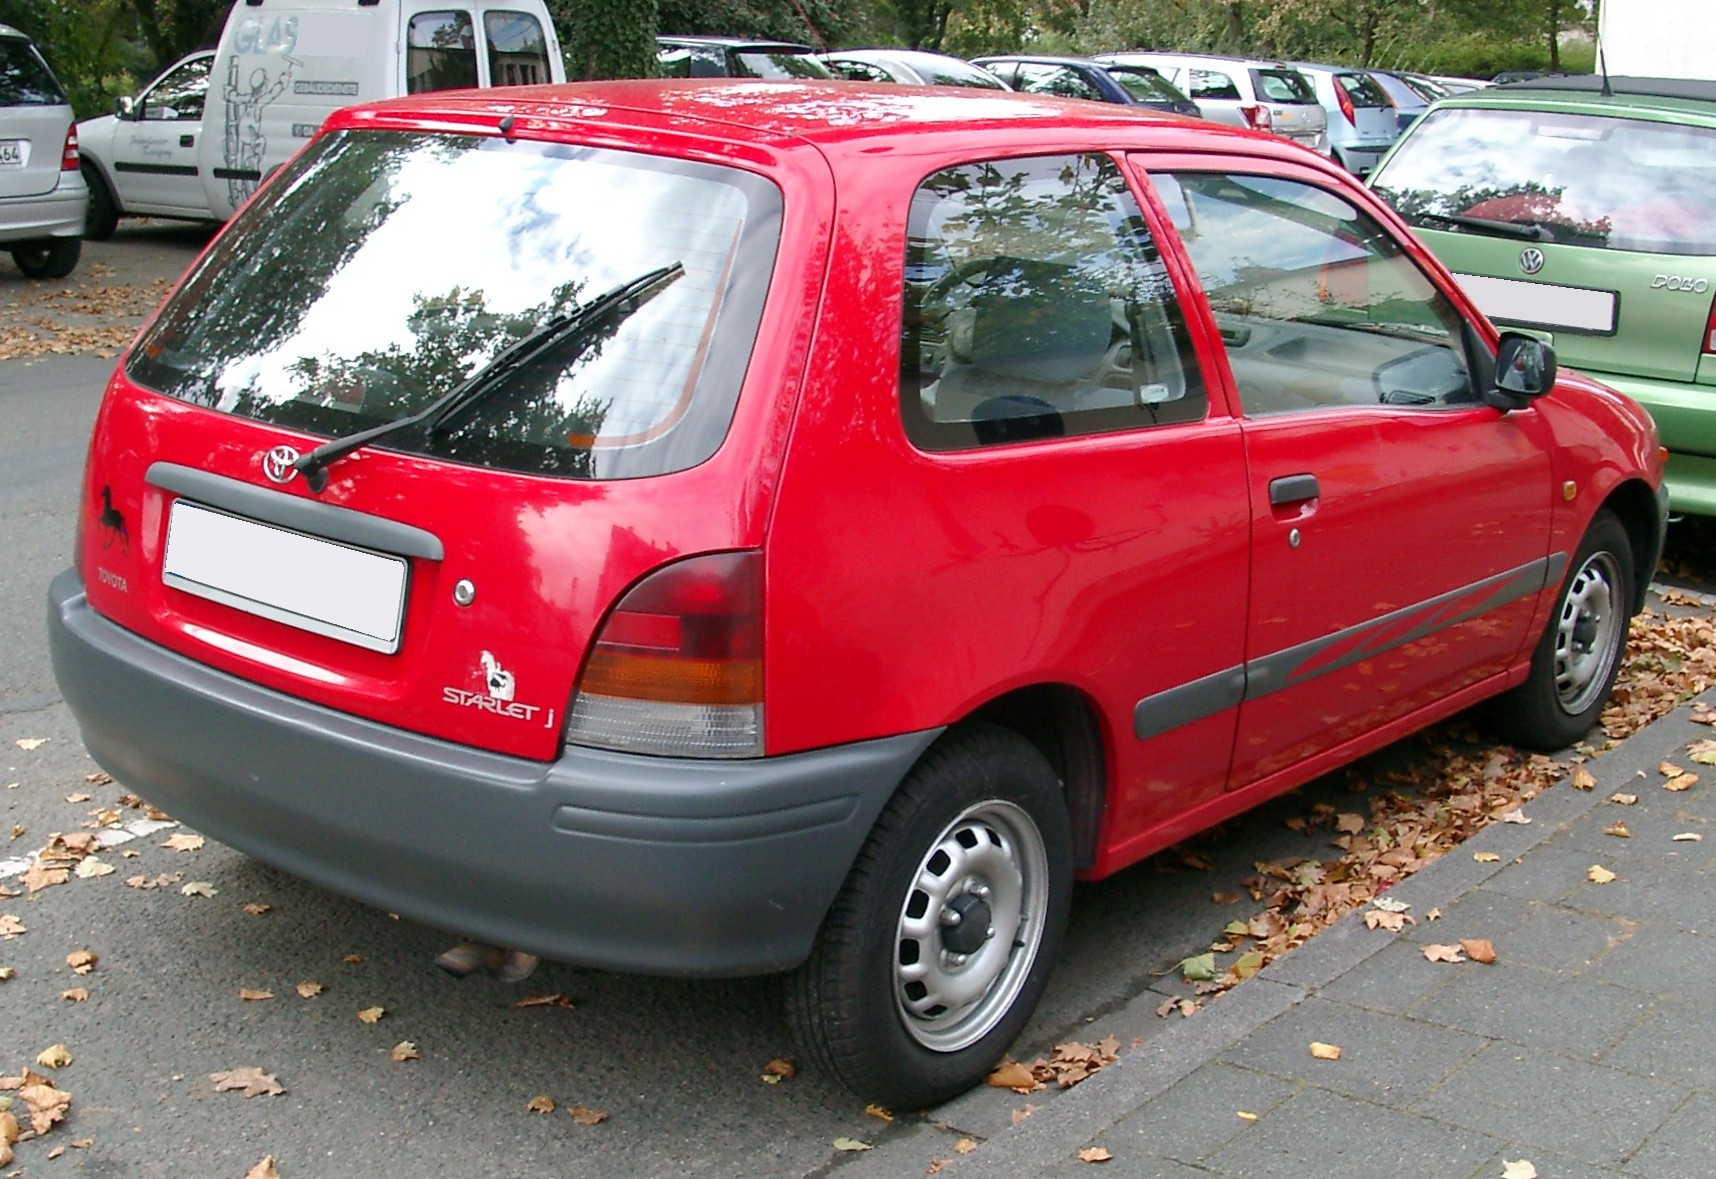 file toyota starlet rear wikimedia commons. Black Bedroom Furniture Sets. Home Design Ideas